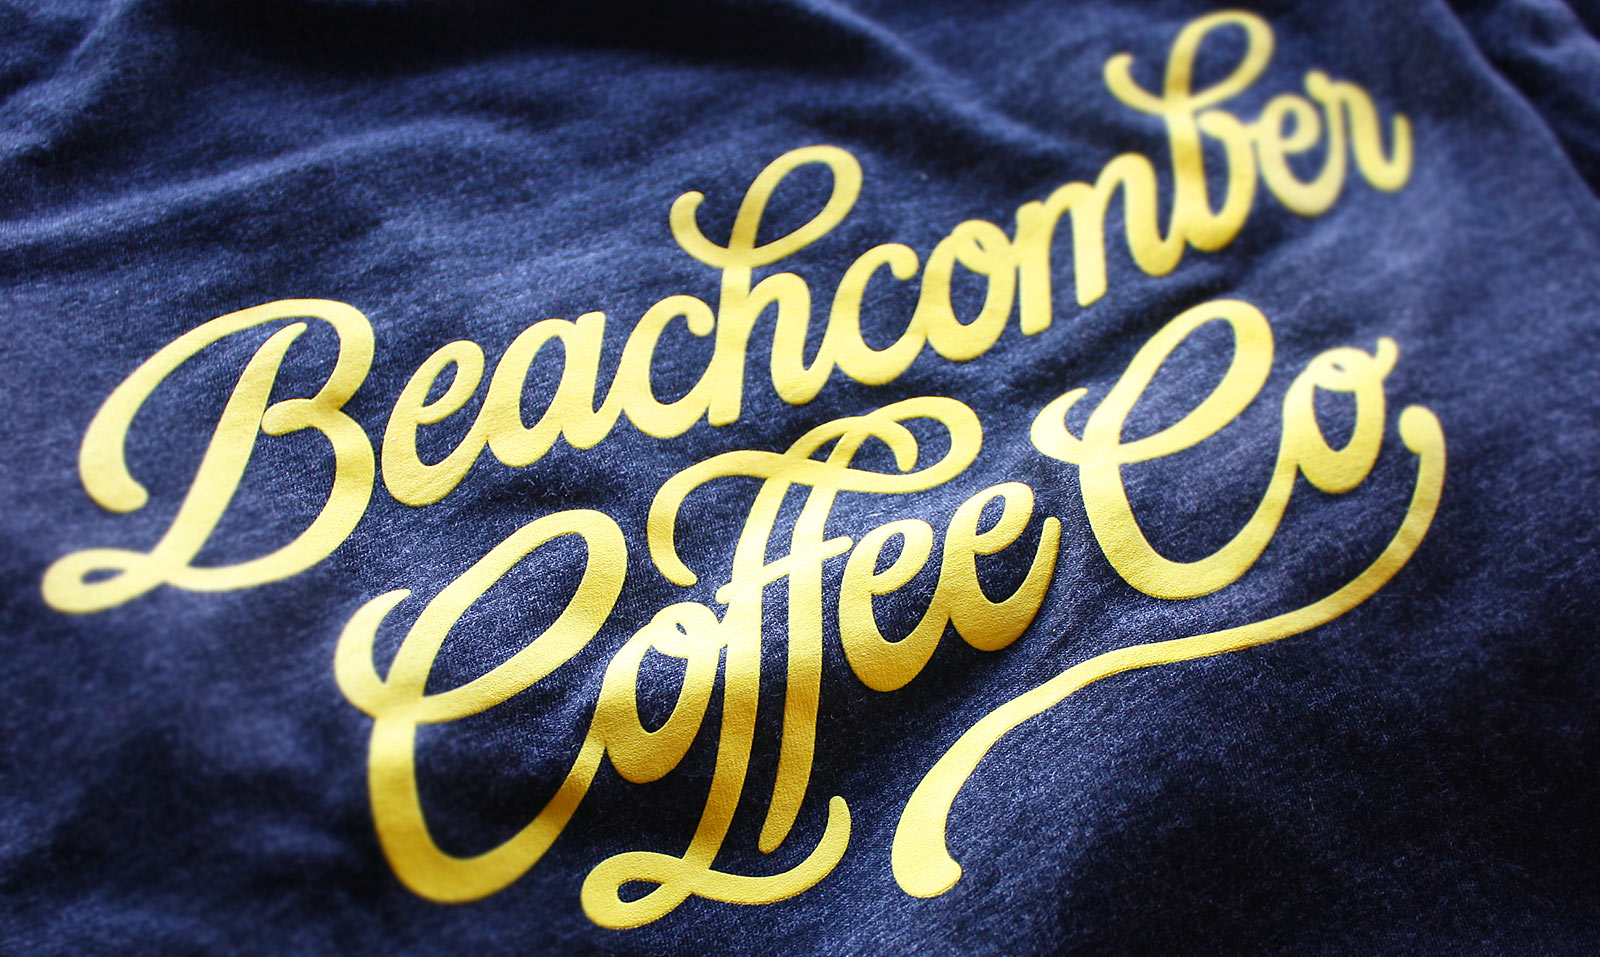 Beachcomber_coffee_shirt_logo.jpg